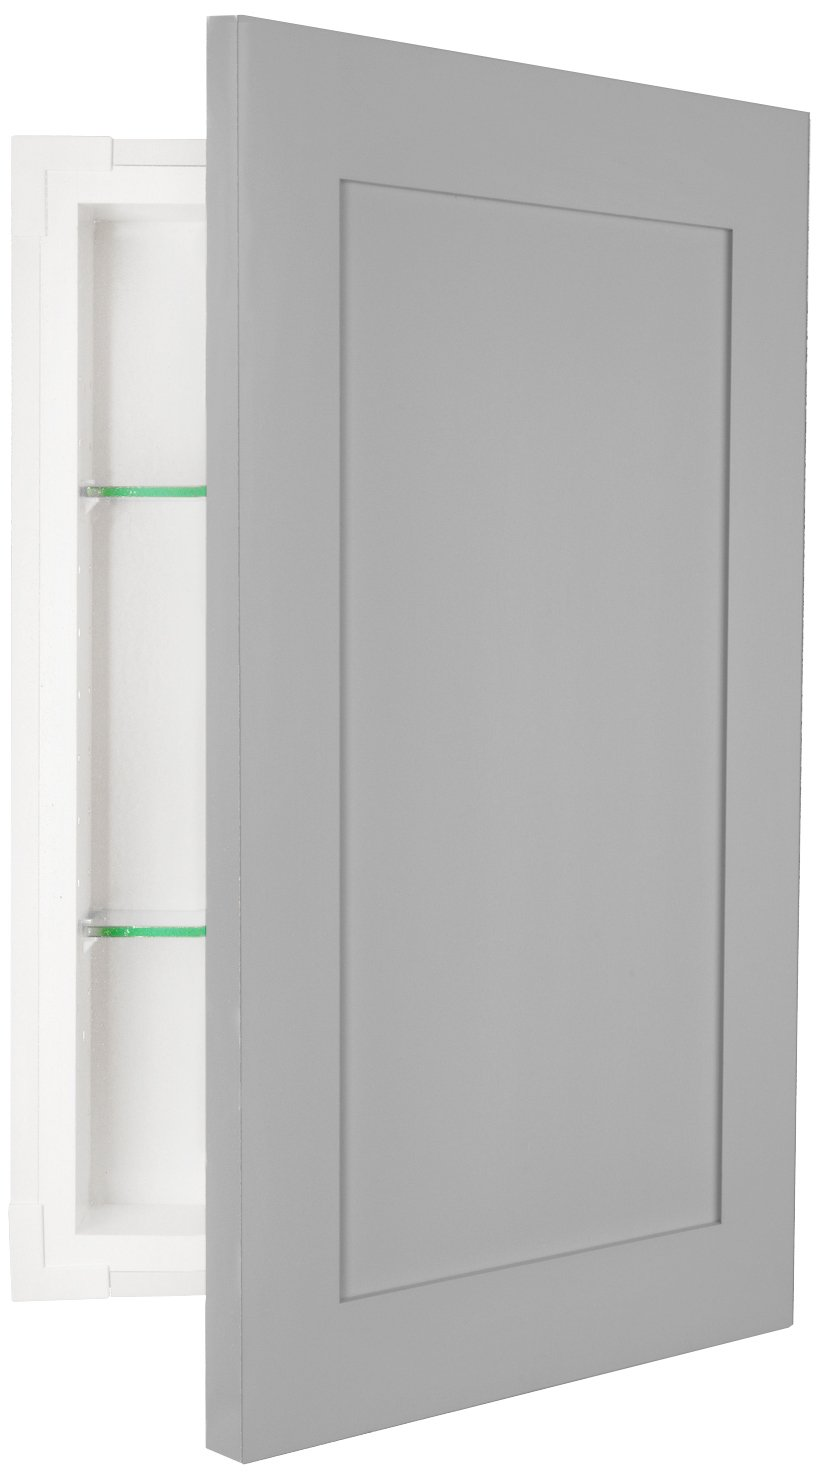 WG Wood Products FR-224-Primed Shaker Style Frameless Recessed In Wall Bathroom Medicine Storage Cabinet-Multiple Finishes, ready to paint/Uncoated, Primed